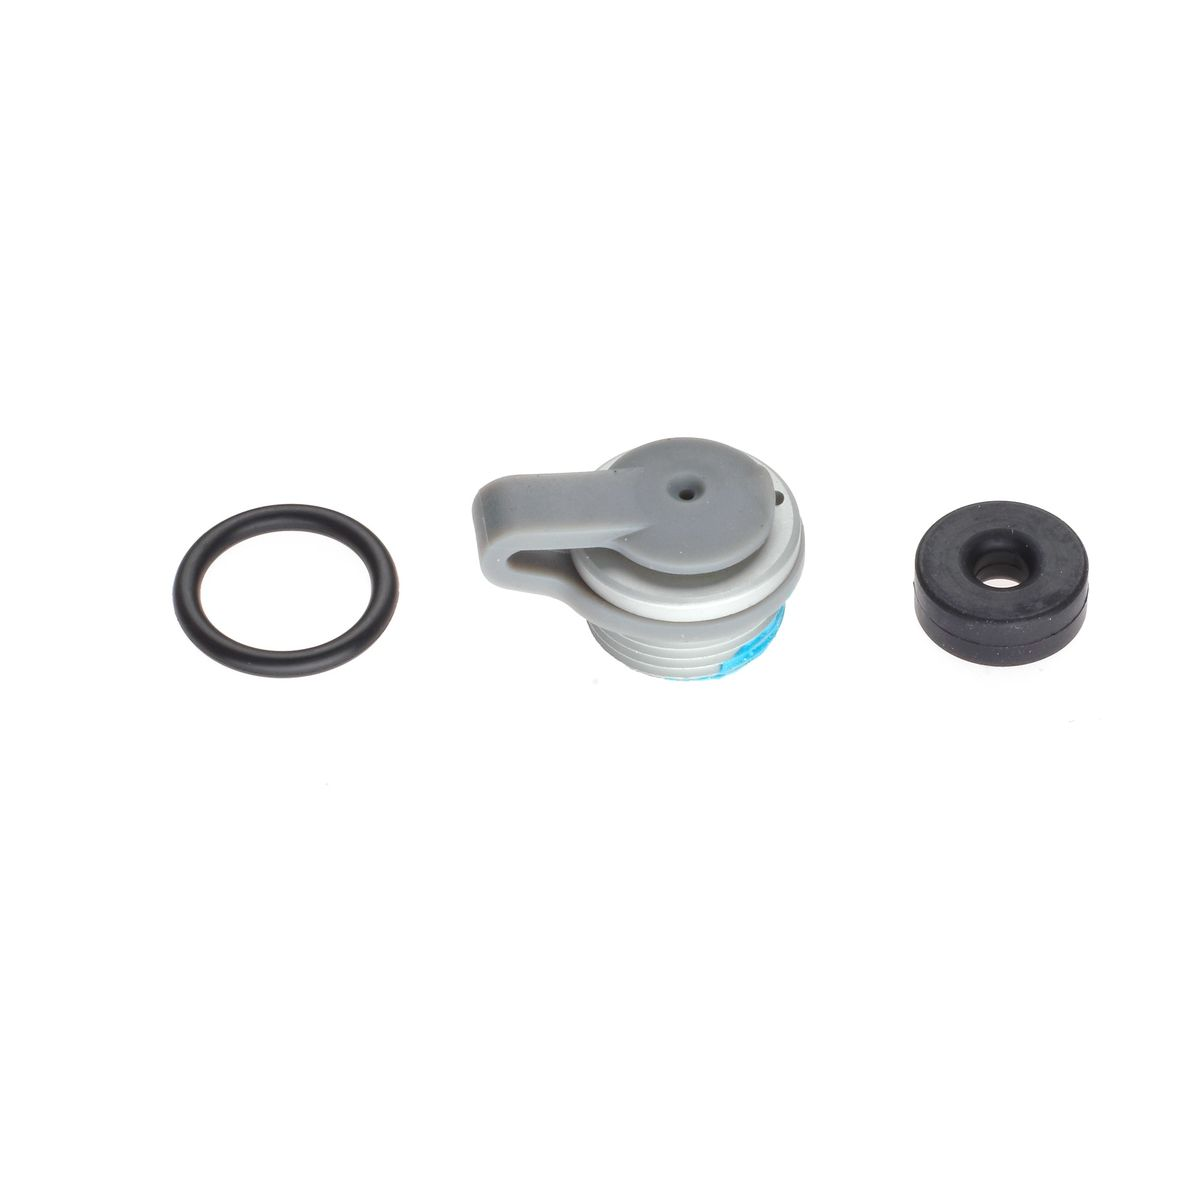 Rebuild kit for Micro Rocket Alu/Carbon